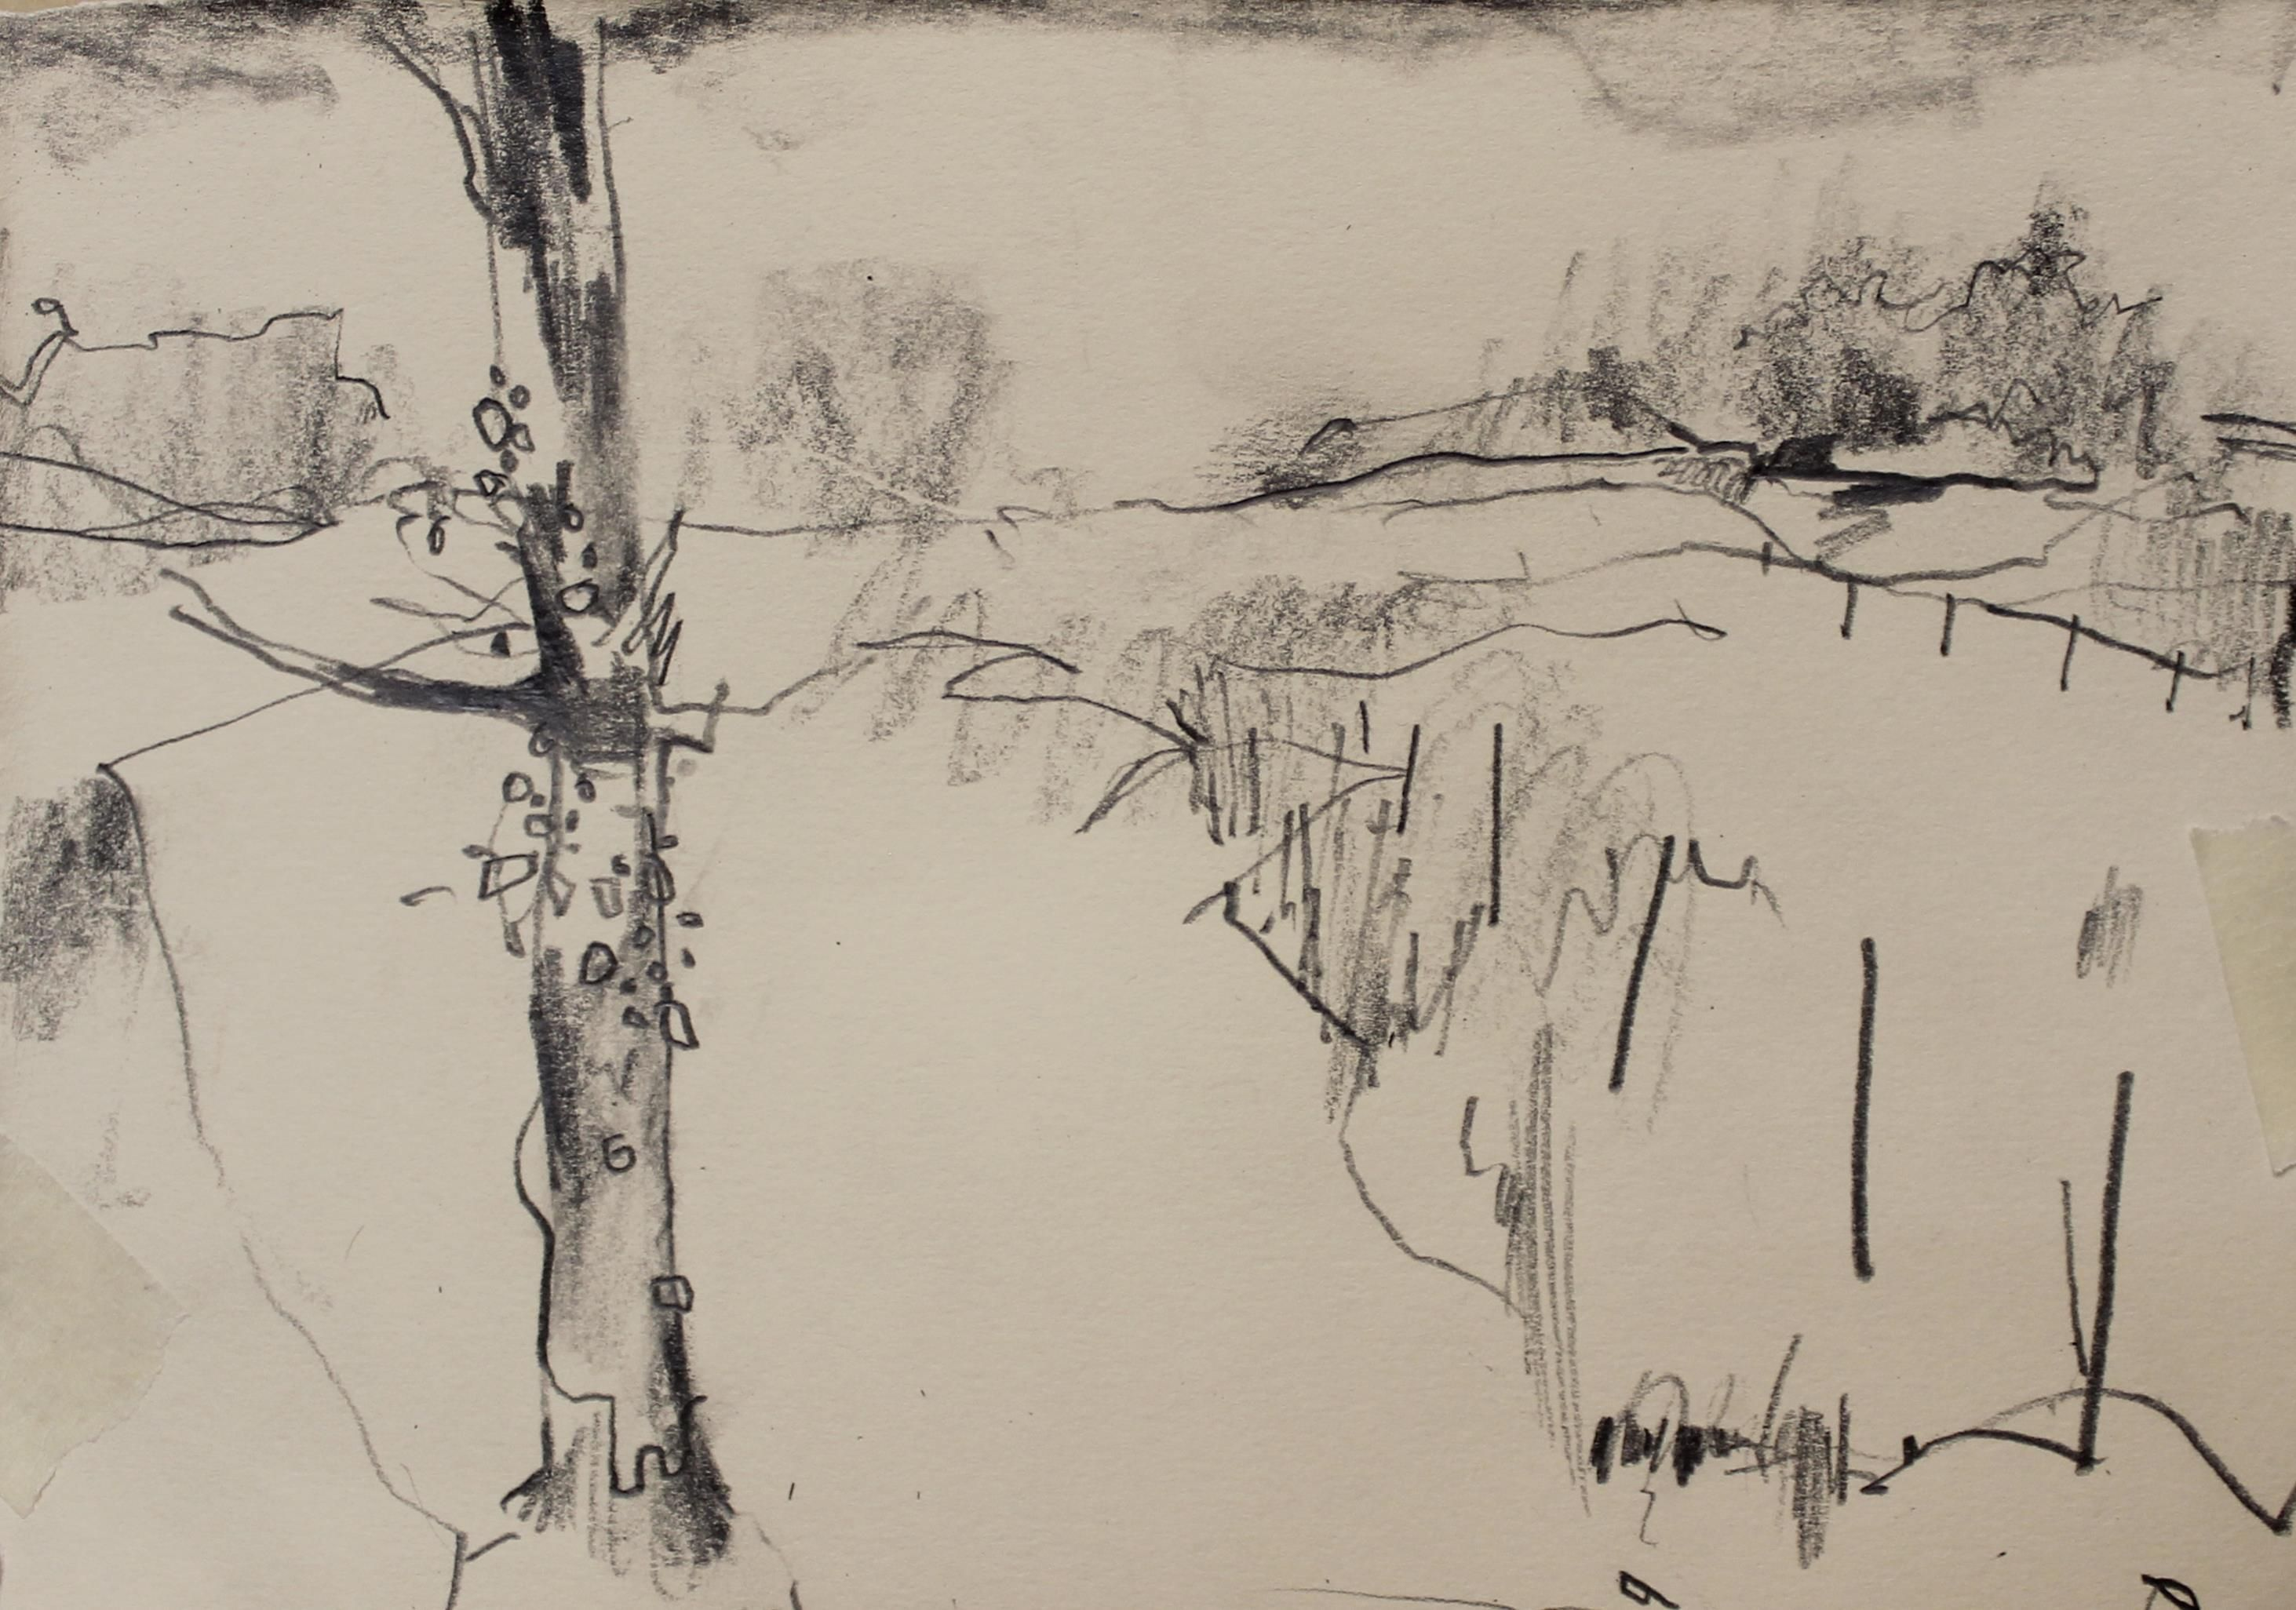 Drawing On A Wet February Morning A Missy And Damp Cwm Pennant Valley Landscape Drawings Landscape Sketch Drawings